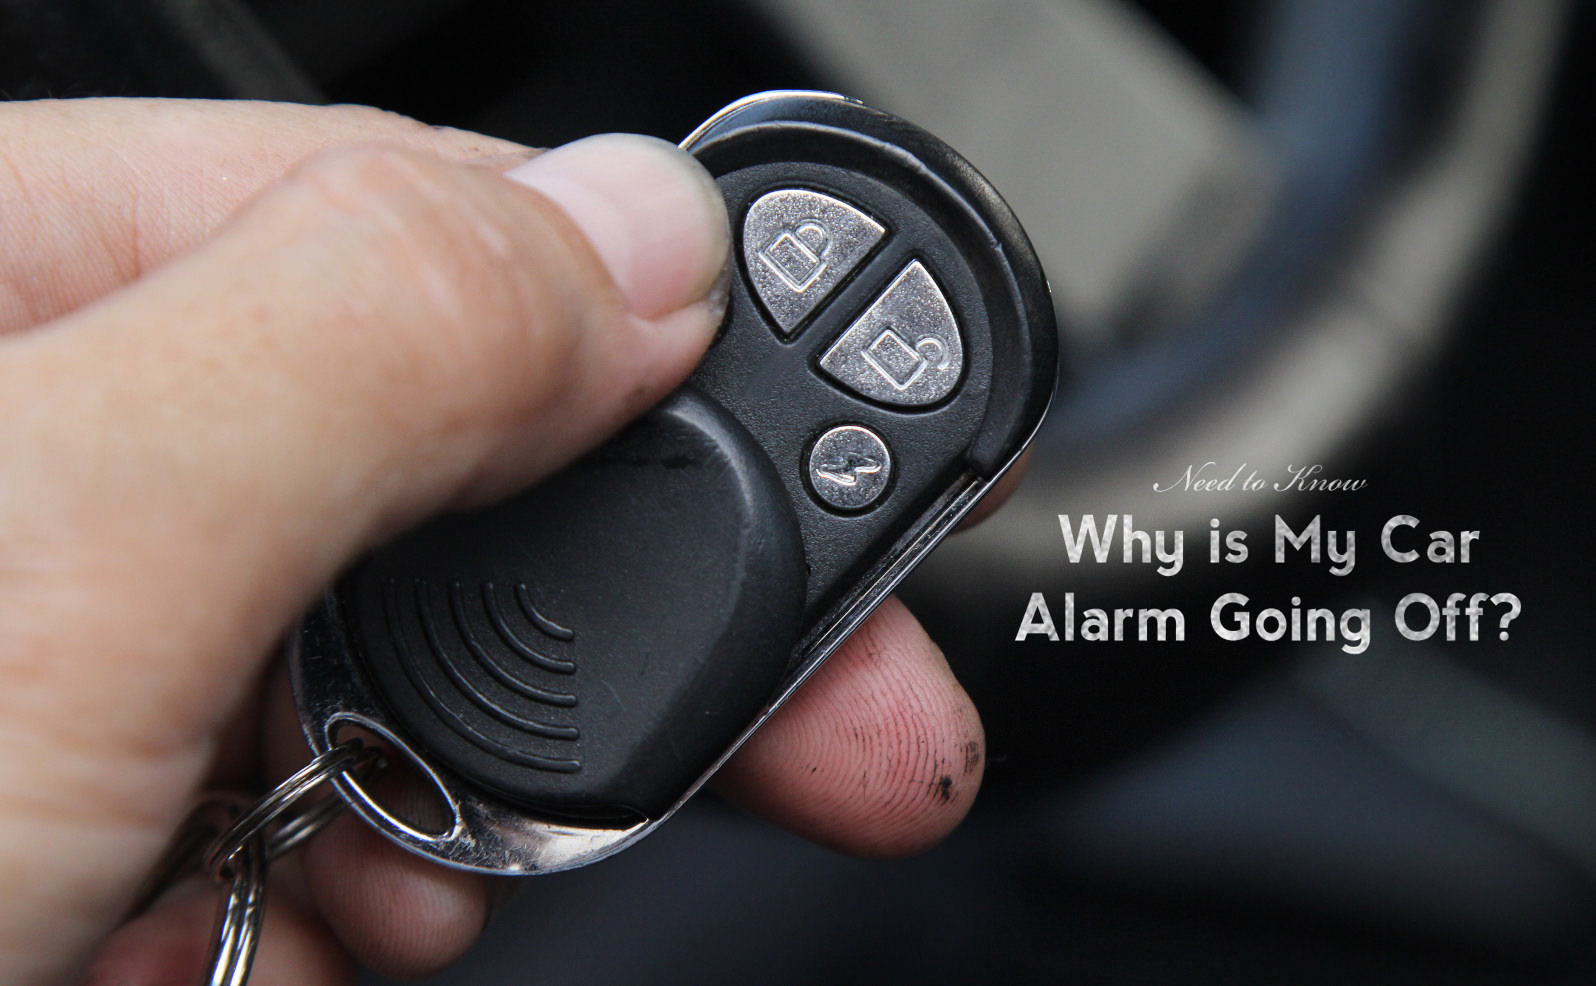 Why is my car alarm going off?